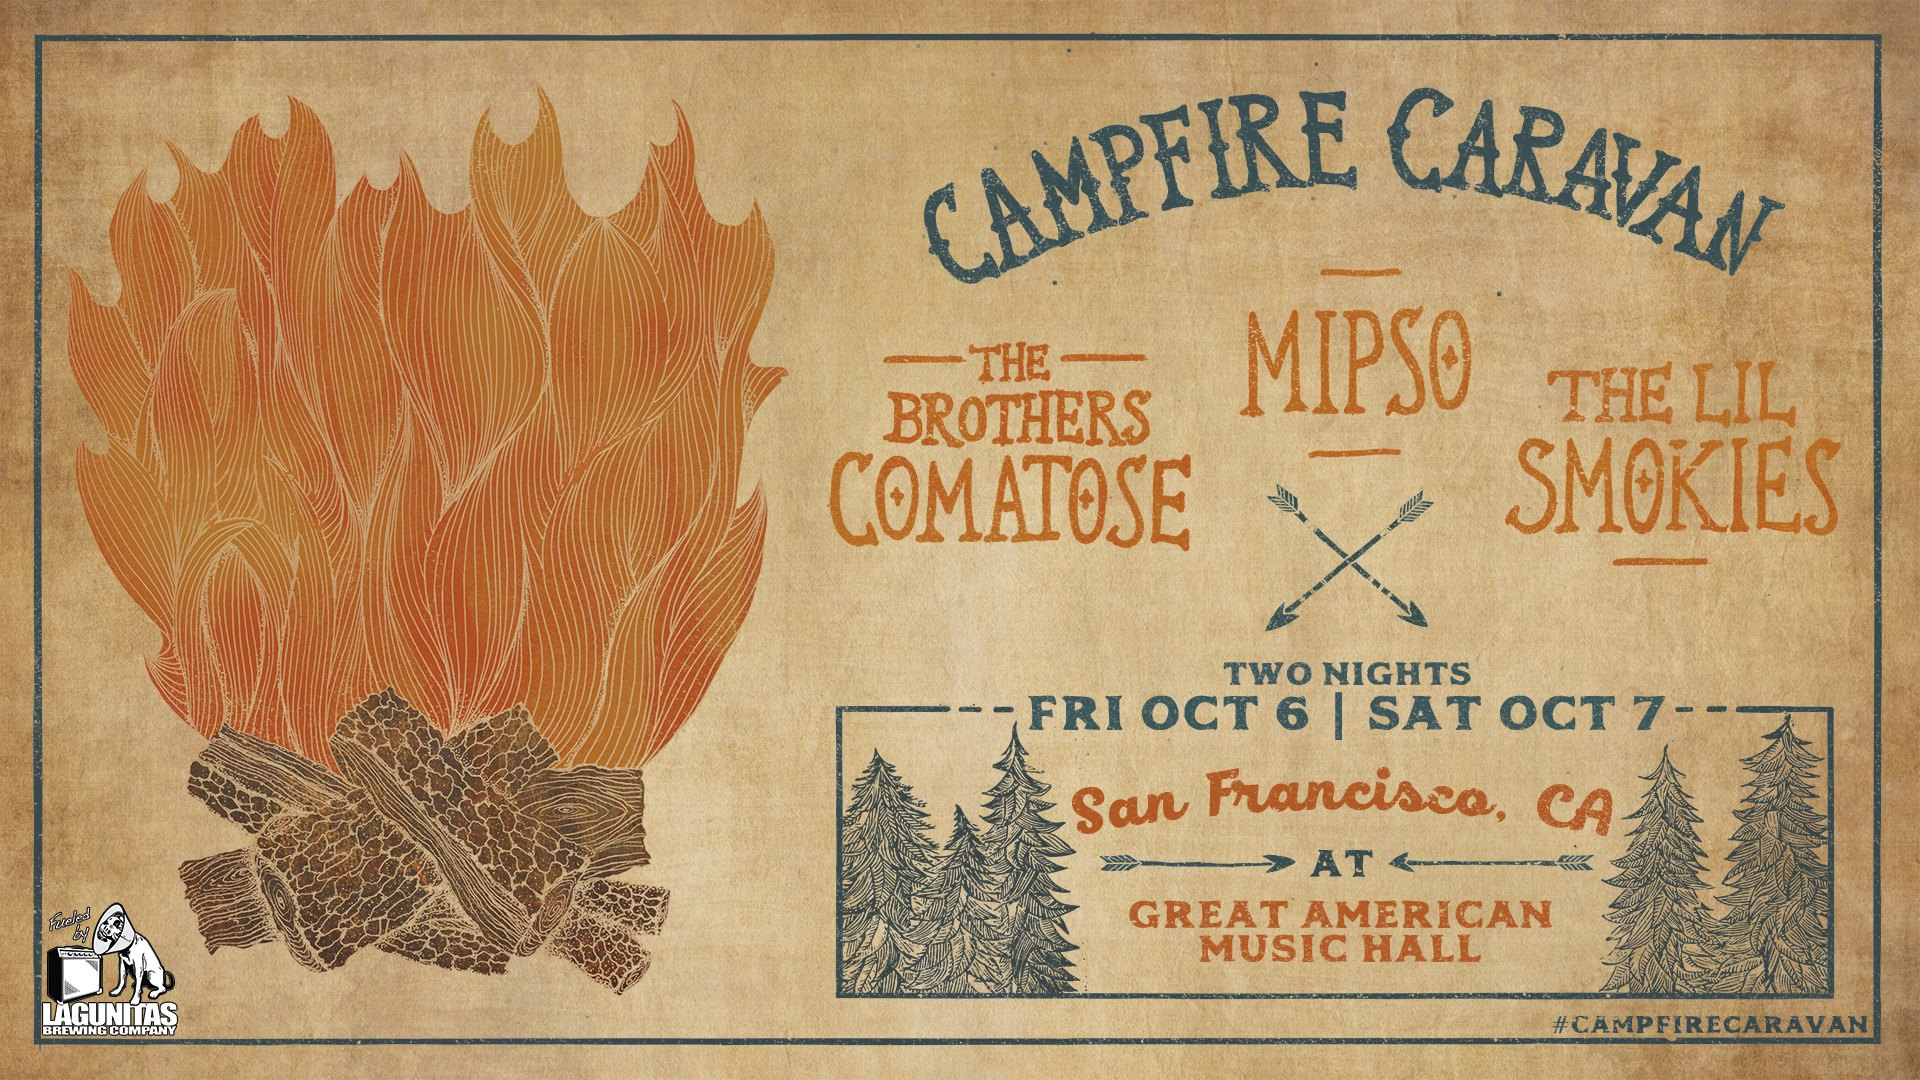 GIVEAWAY - Win tickets to Campfire Caravan at the Great American Music Hall (San Francisco) 10/7